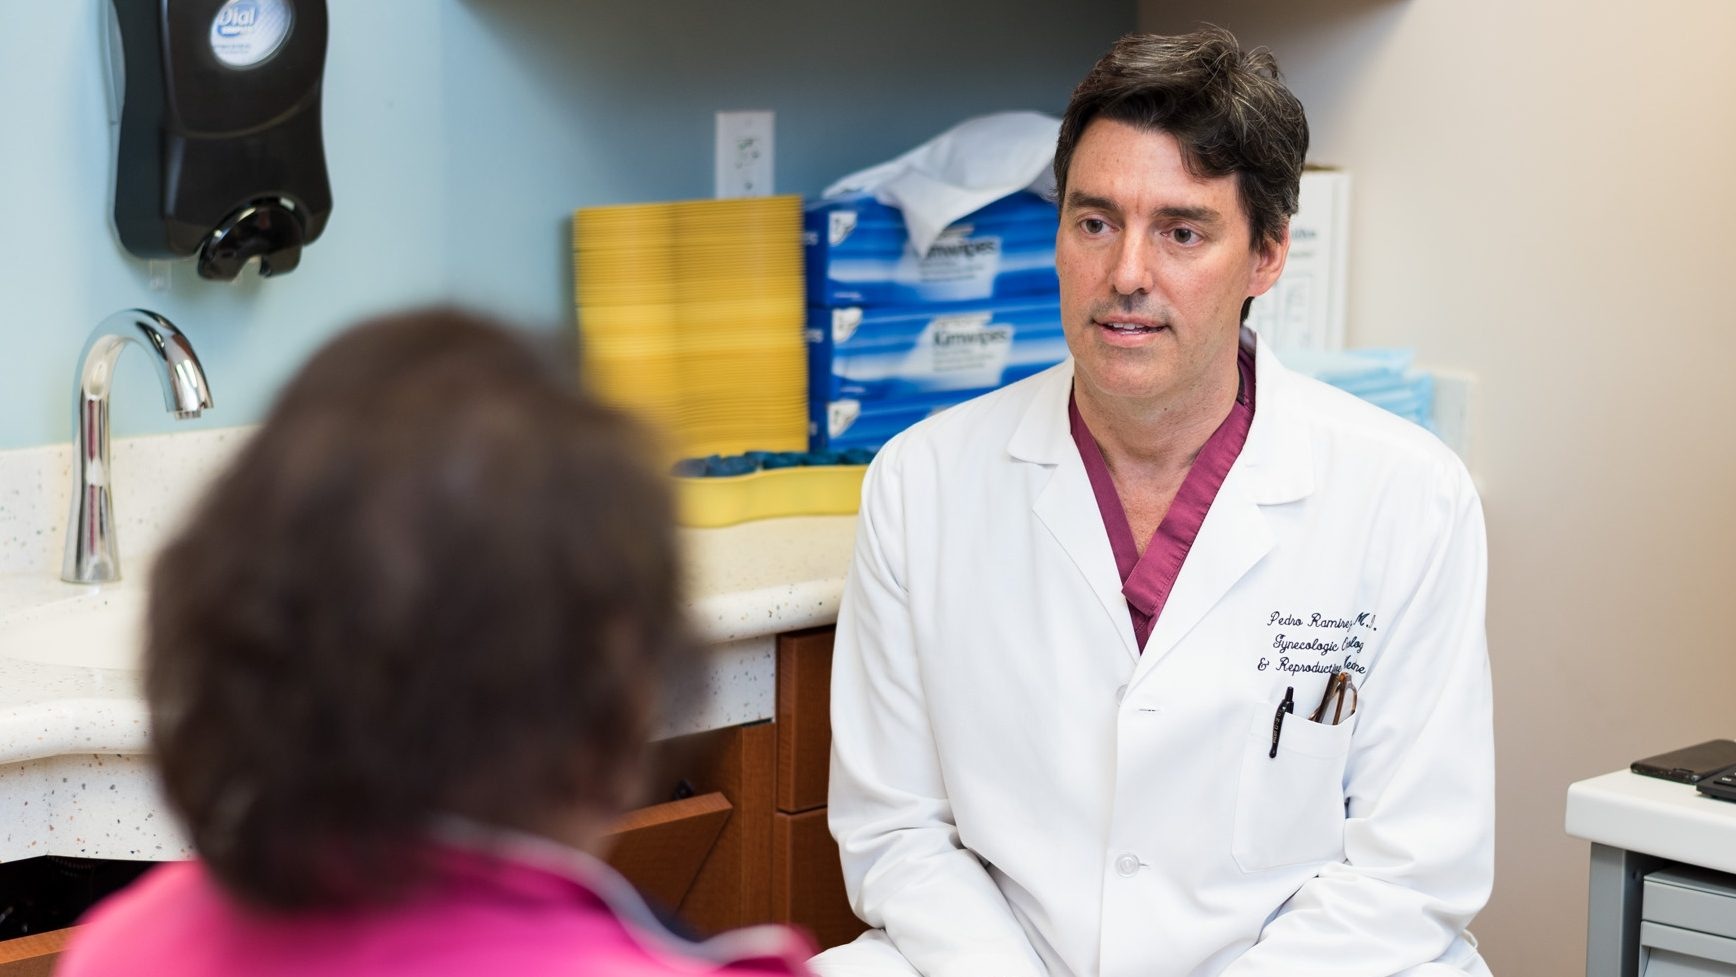 Cervical cancer surgeon Pedro Ramirez, M.D.